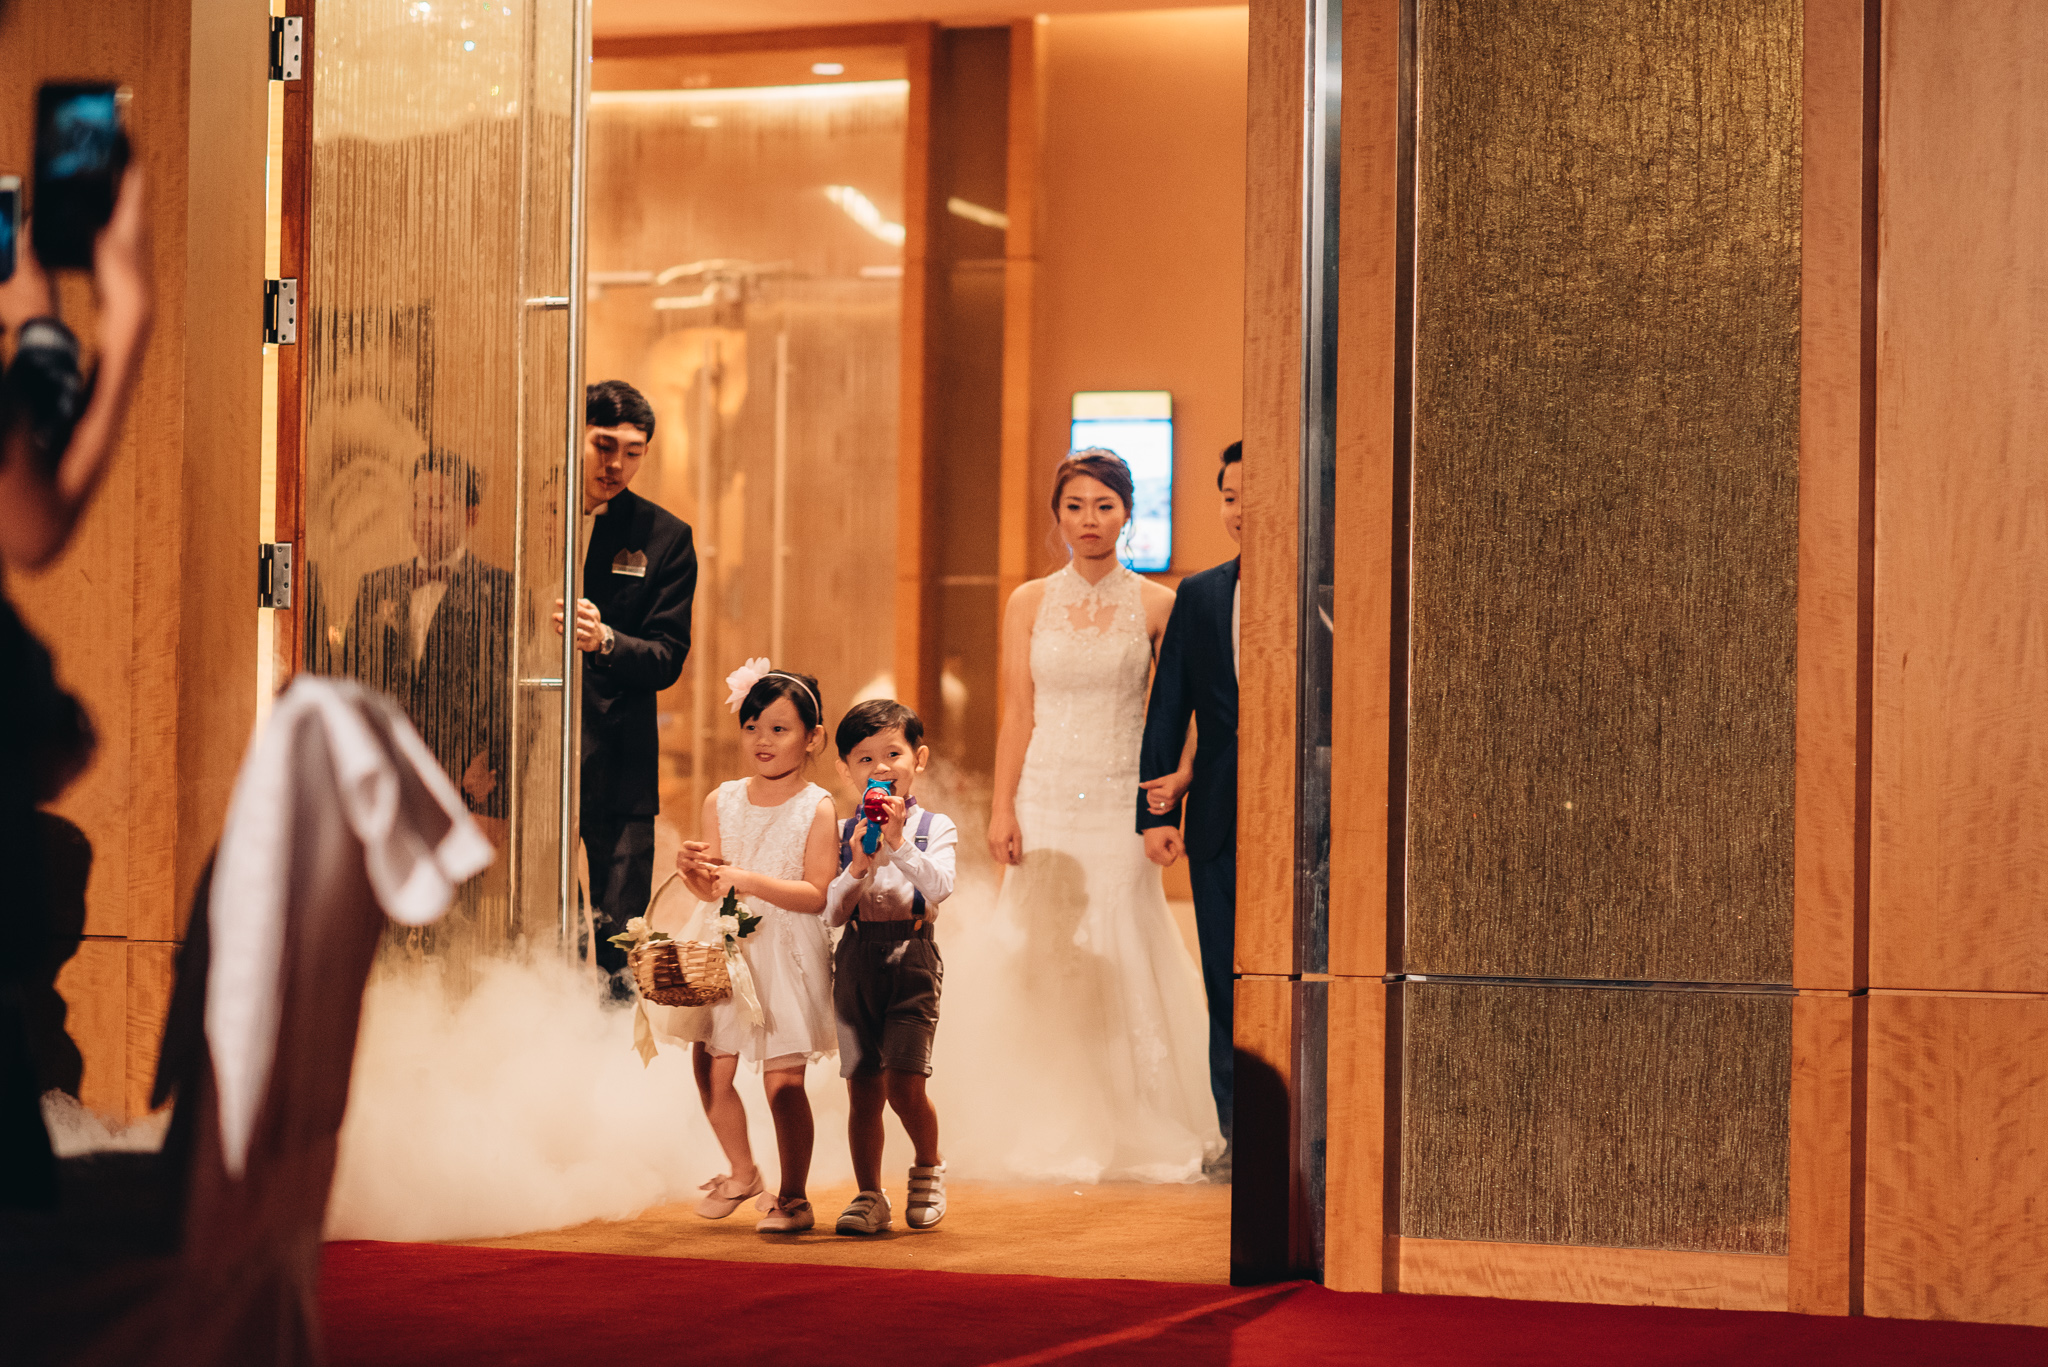 See Yuen & Keng Yeow Wedding Day Highlights (resized for sharing) - 118.jpg